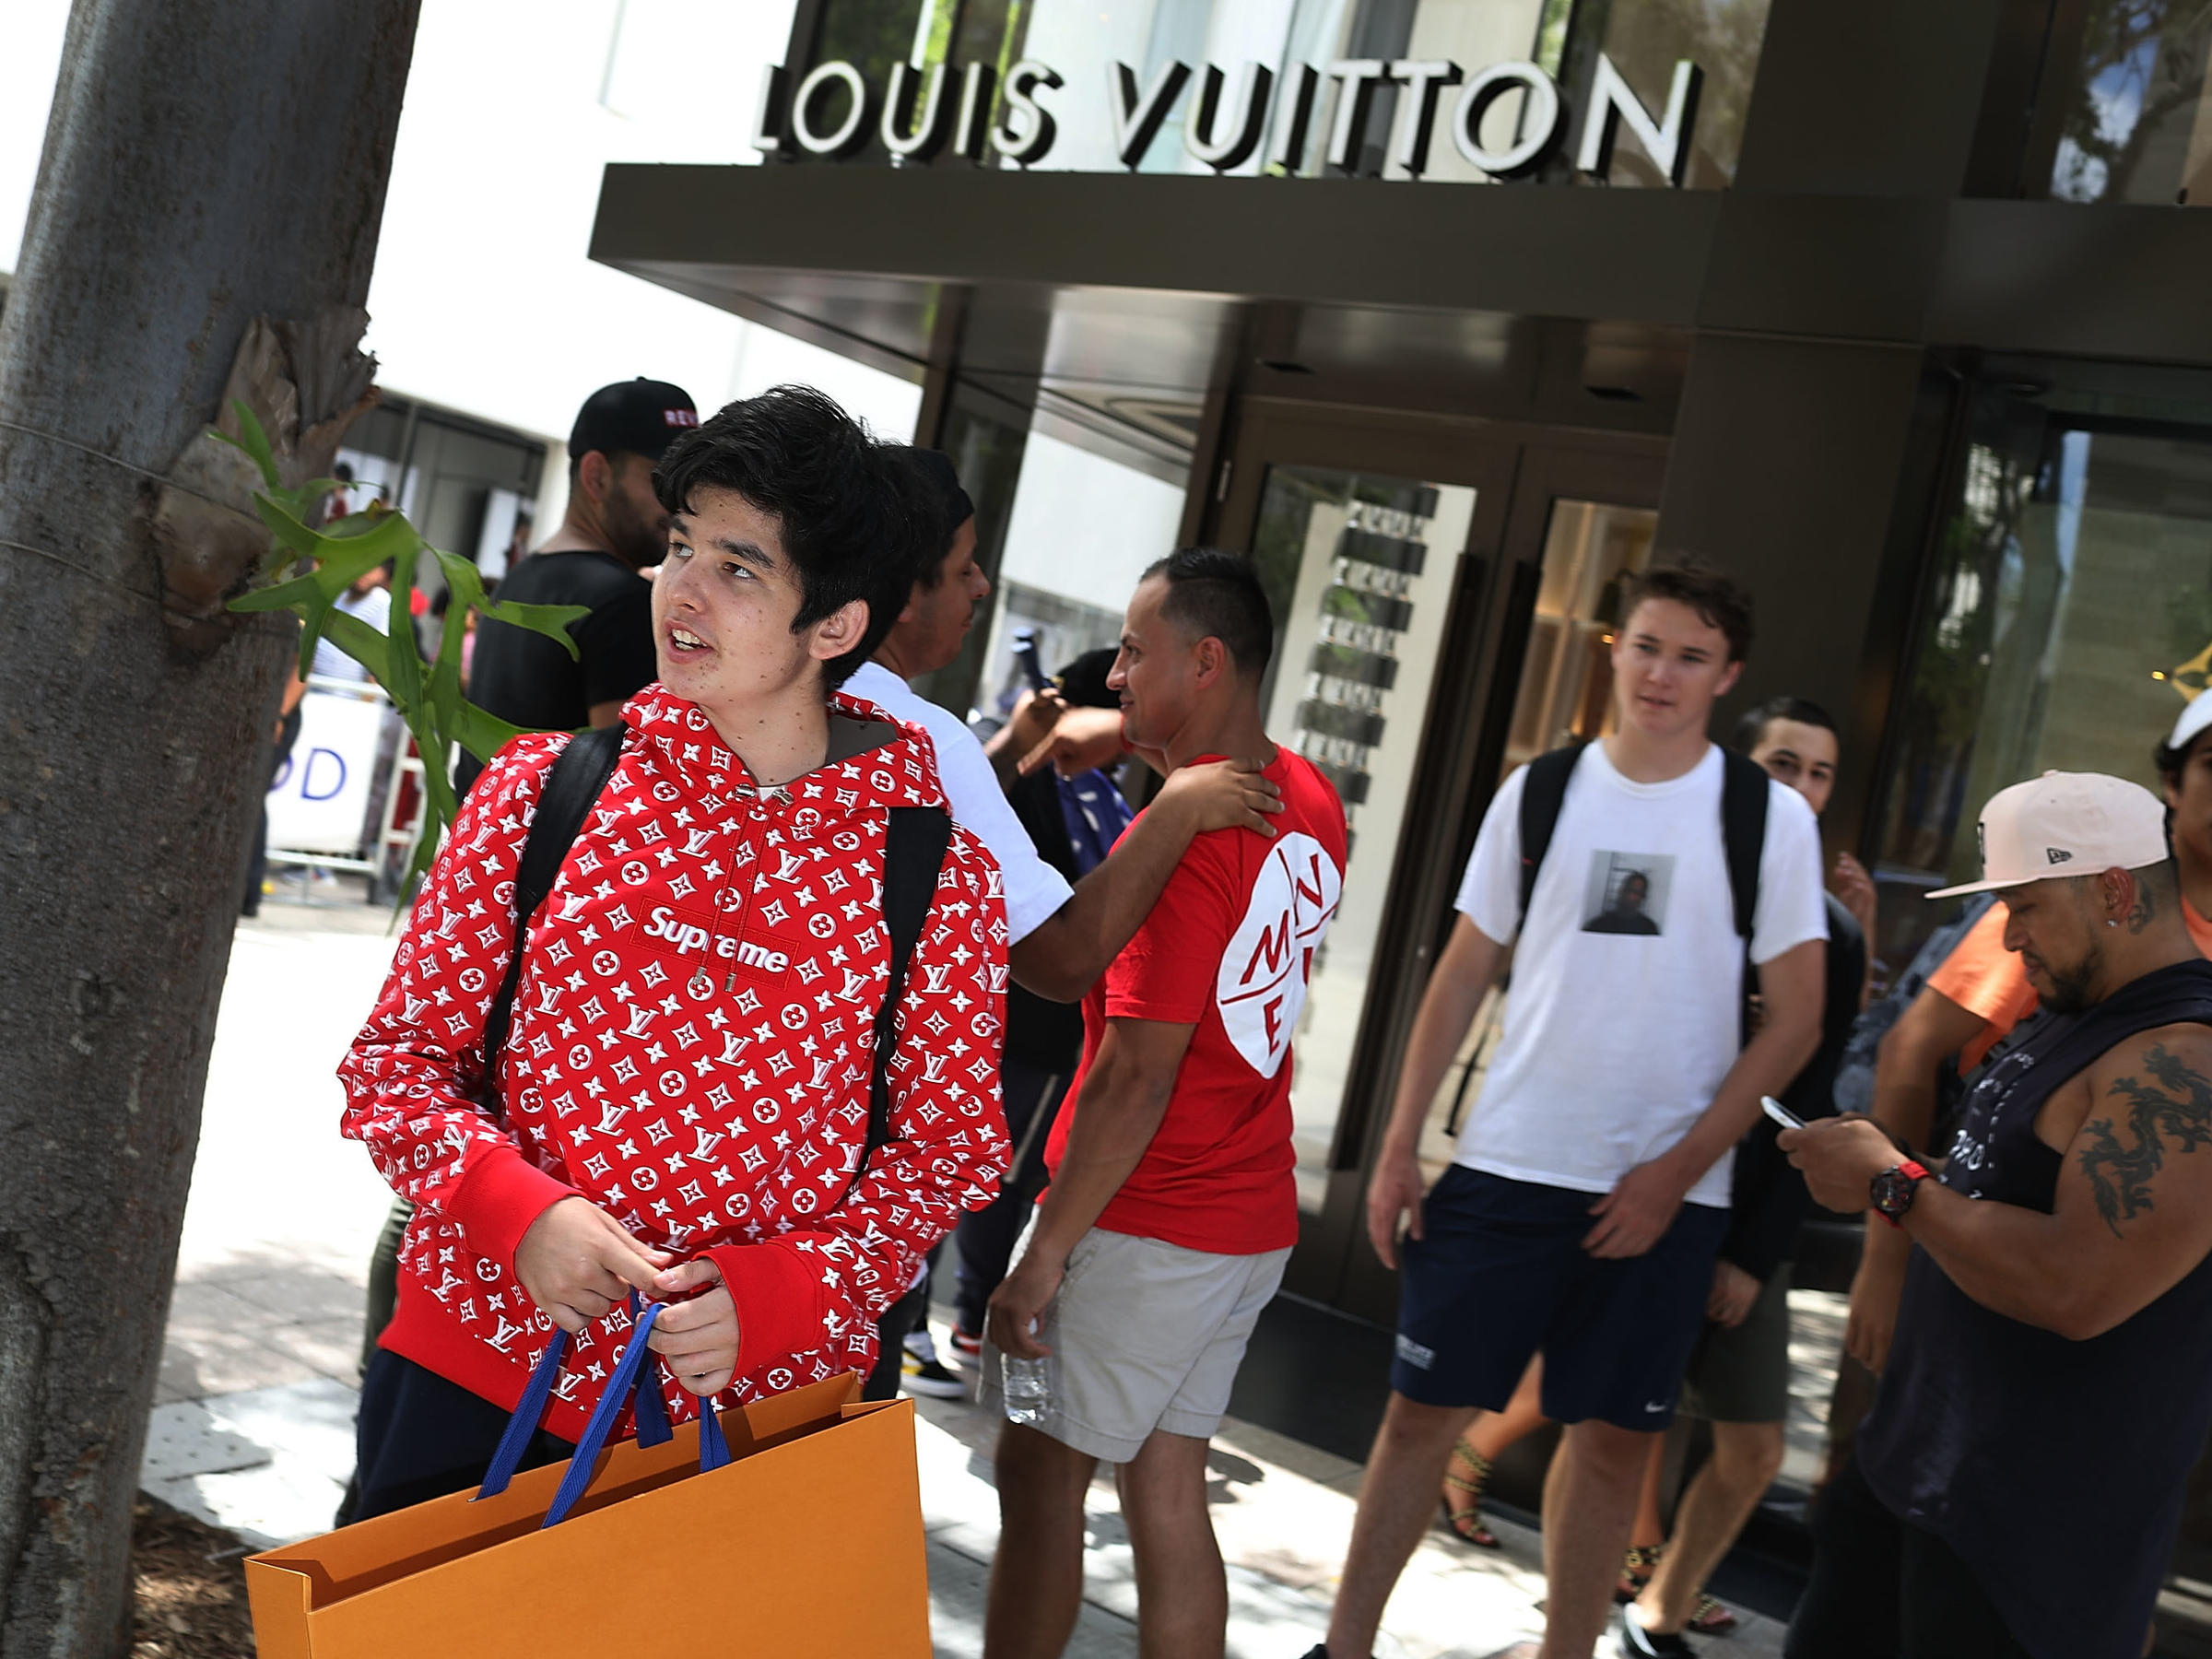 b70fb450d825 Mateo Lorente (left) wears his new Supreme shirt as people flock to a Louis  Vuitton store in Miami to purchase limited-edition Supreme and Louis Vuitton  ...